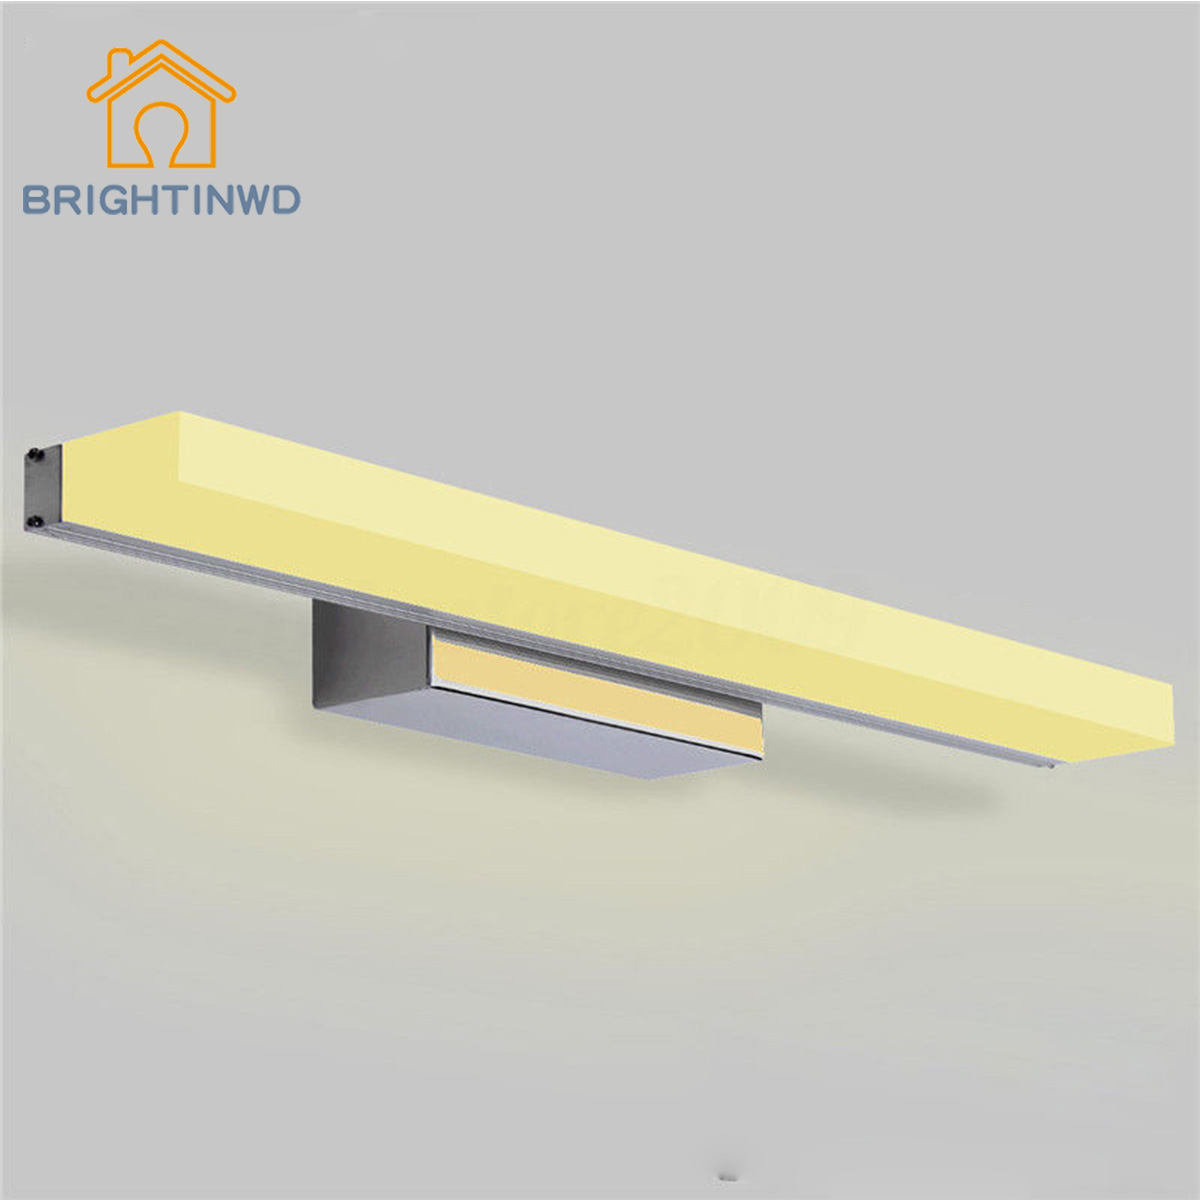 BRIGHTINWD Modern Bathroom Toilet Vanity Wall Makeup Light Mirror Front LED Lamp Waterproof декор lord vanity quinta mirabilia grigio 20x56